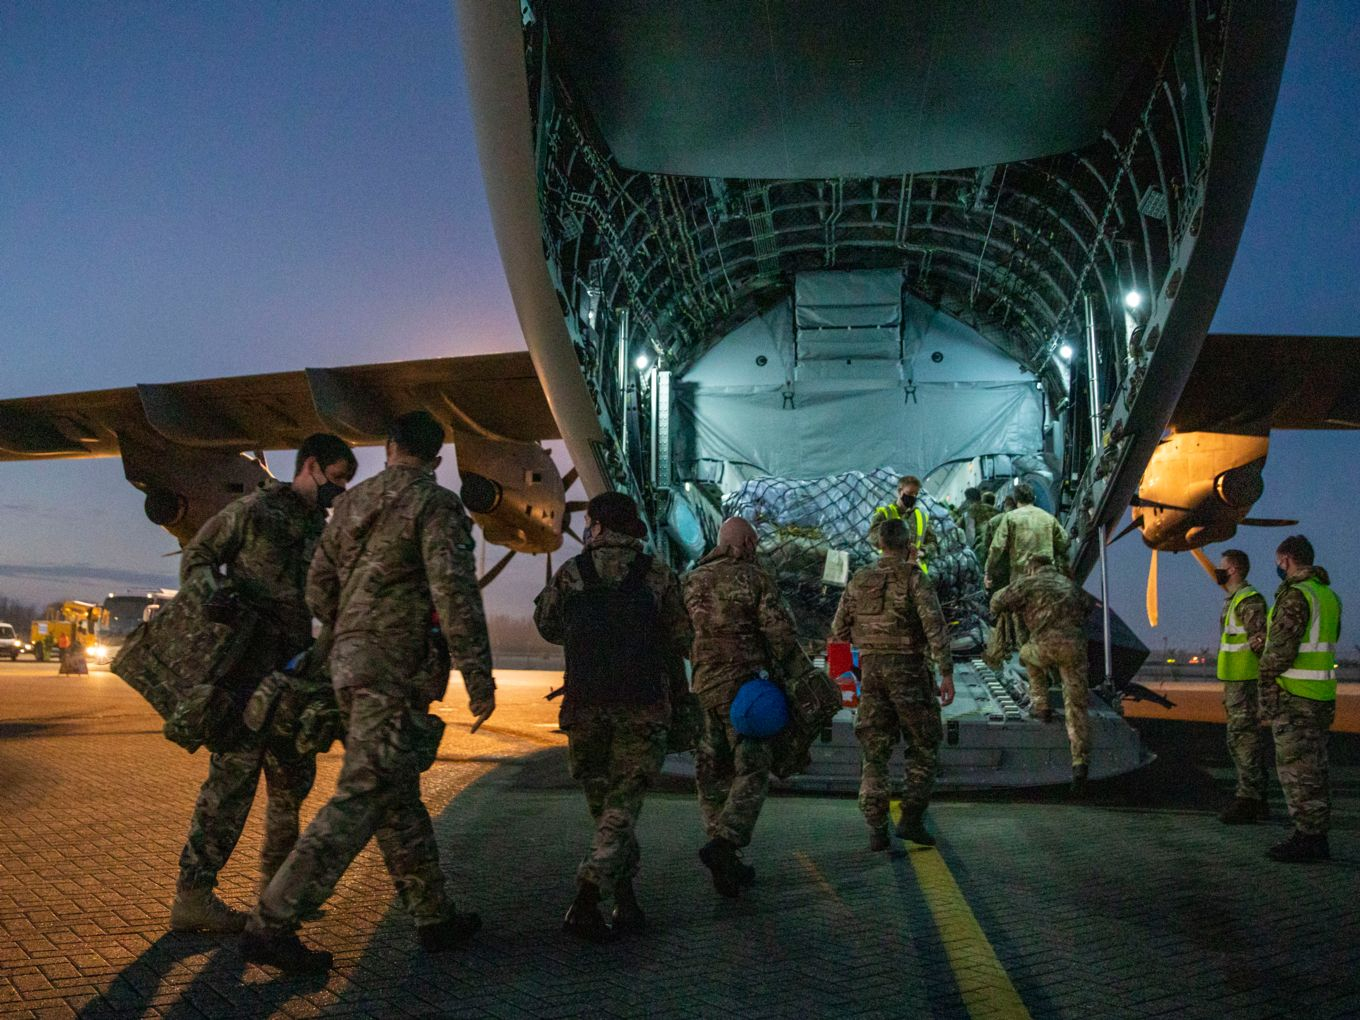 Image shows military personnel boarding an RAF A400M aircraft from the rear.